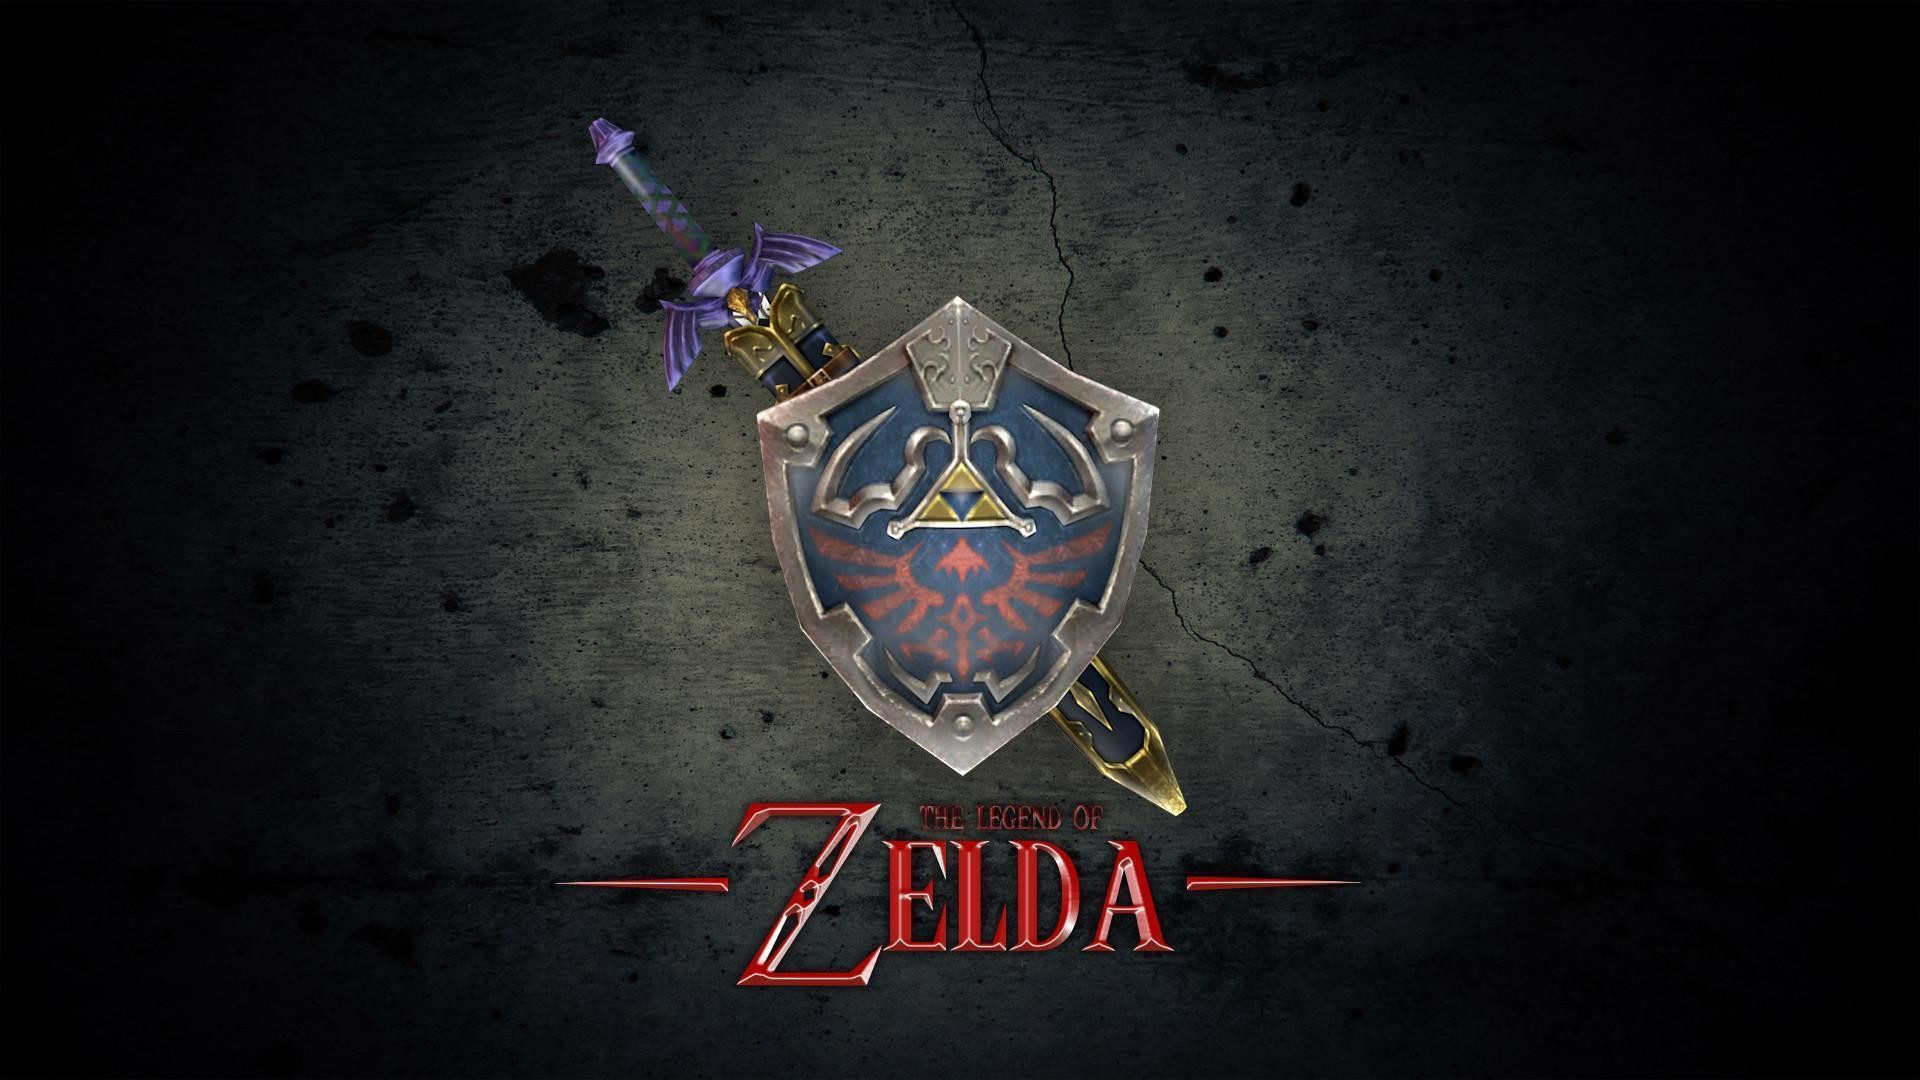 Zelda Wallpaper HD 1920x1080